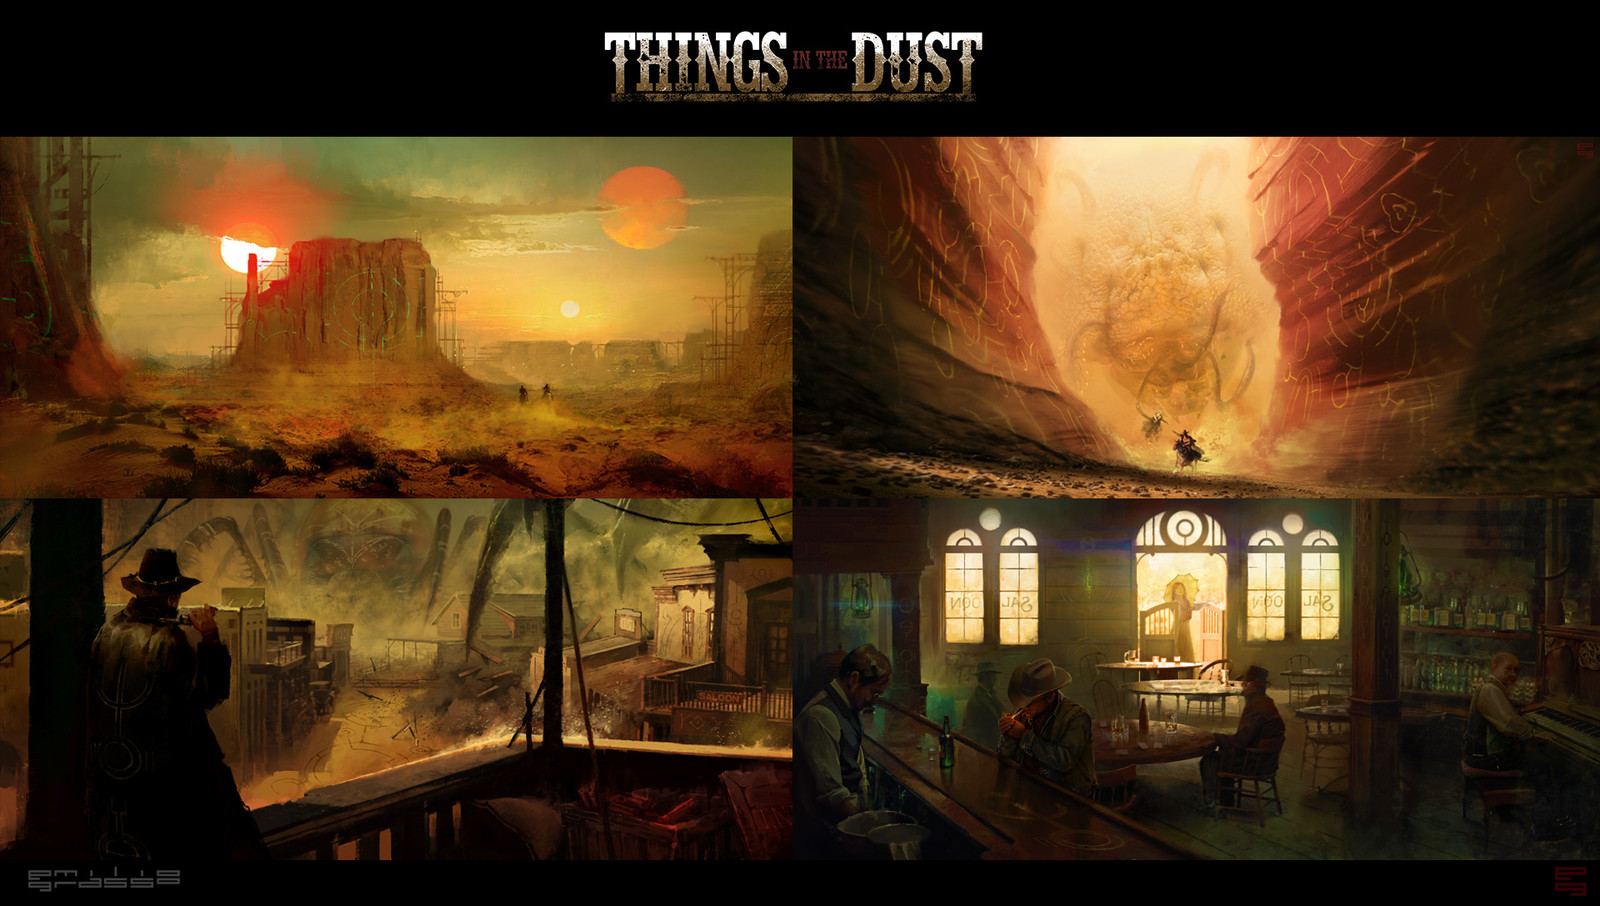 Things In The Dust